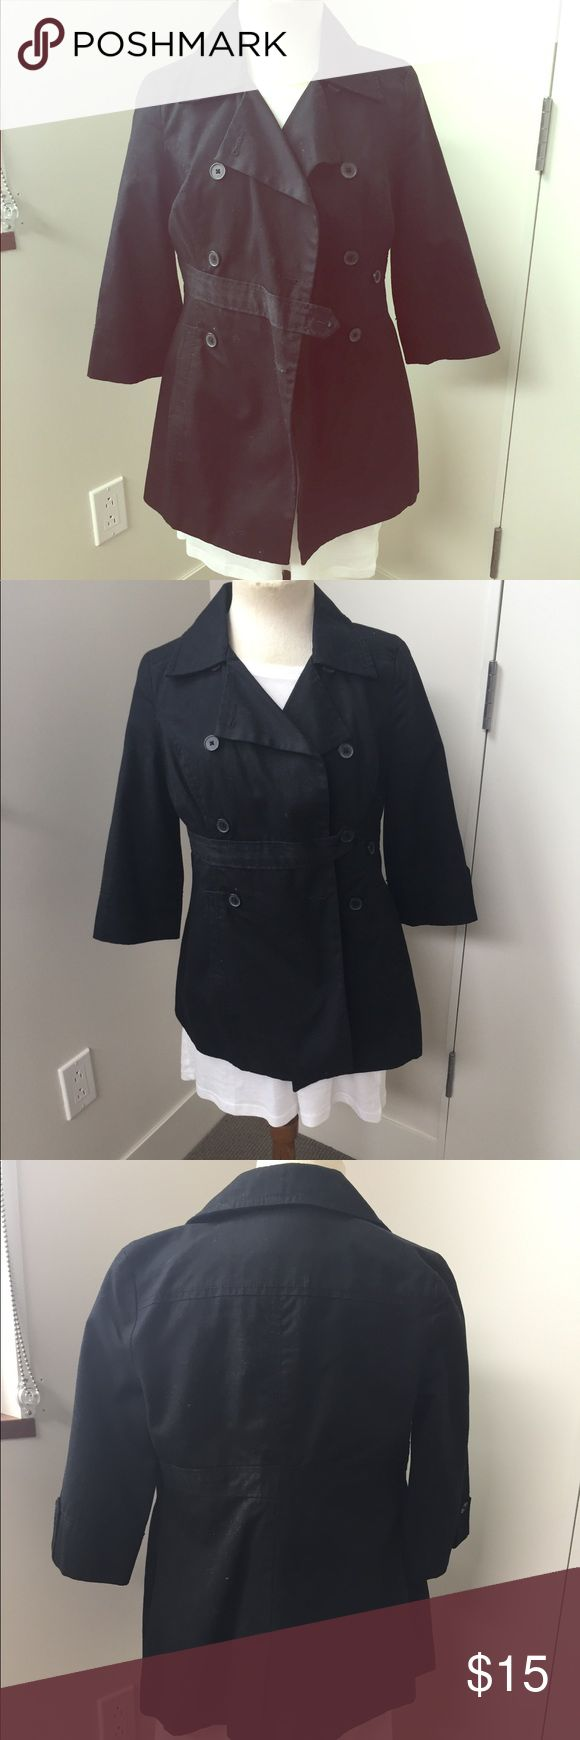 Black 3/4 Sleeve Twill Pea Coat Lightweight black pea coat, lightly lined. Simple, classic, and extra pretty with the 3/4 sleeve. Lightly worn. Old Navy Jackets & Coats Pea Coats